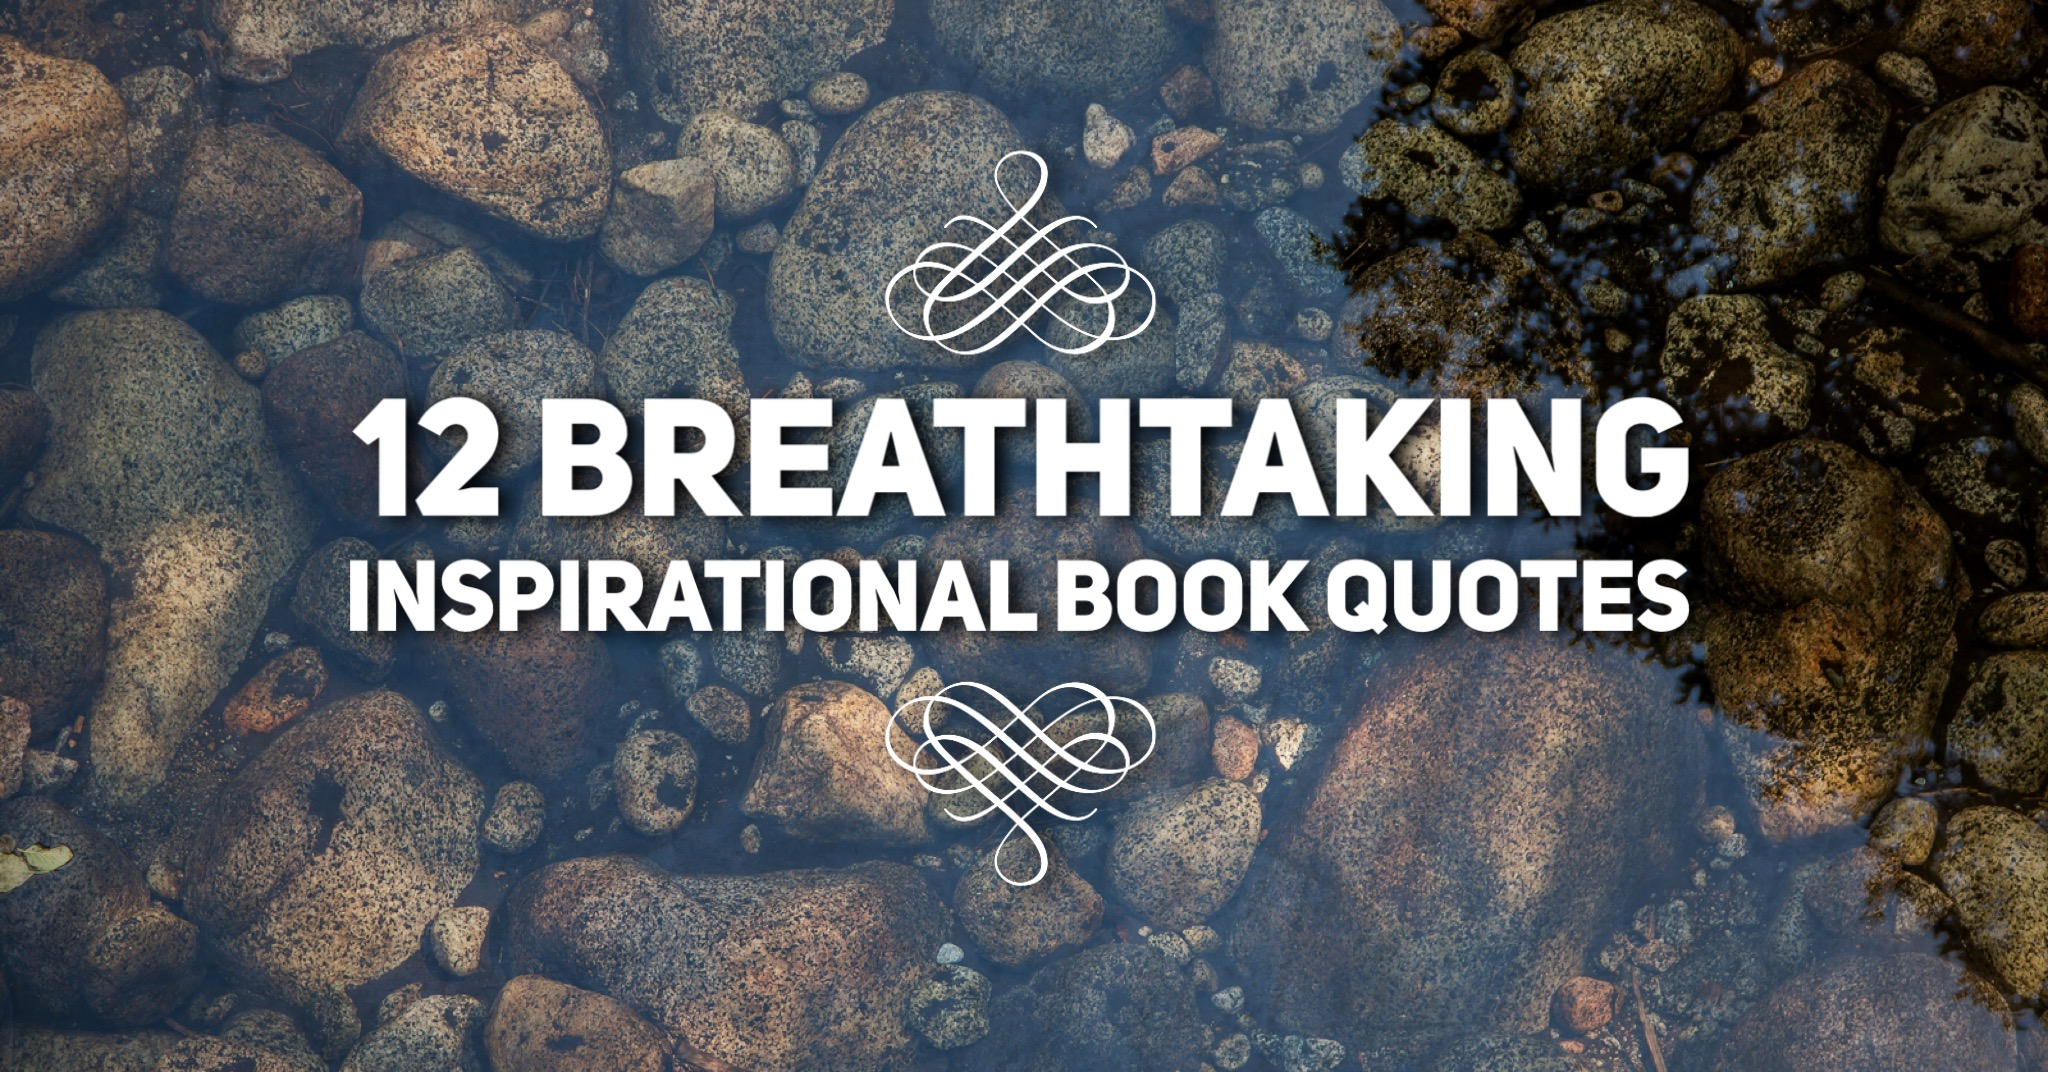 Book Cover Inspiration Quotes ~ Inspirational life quotes from books breathtaking